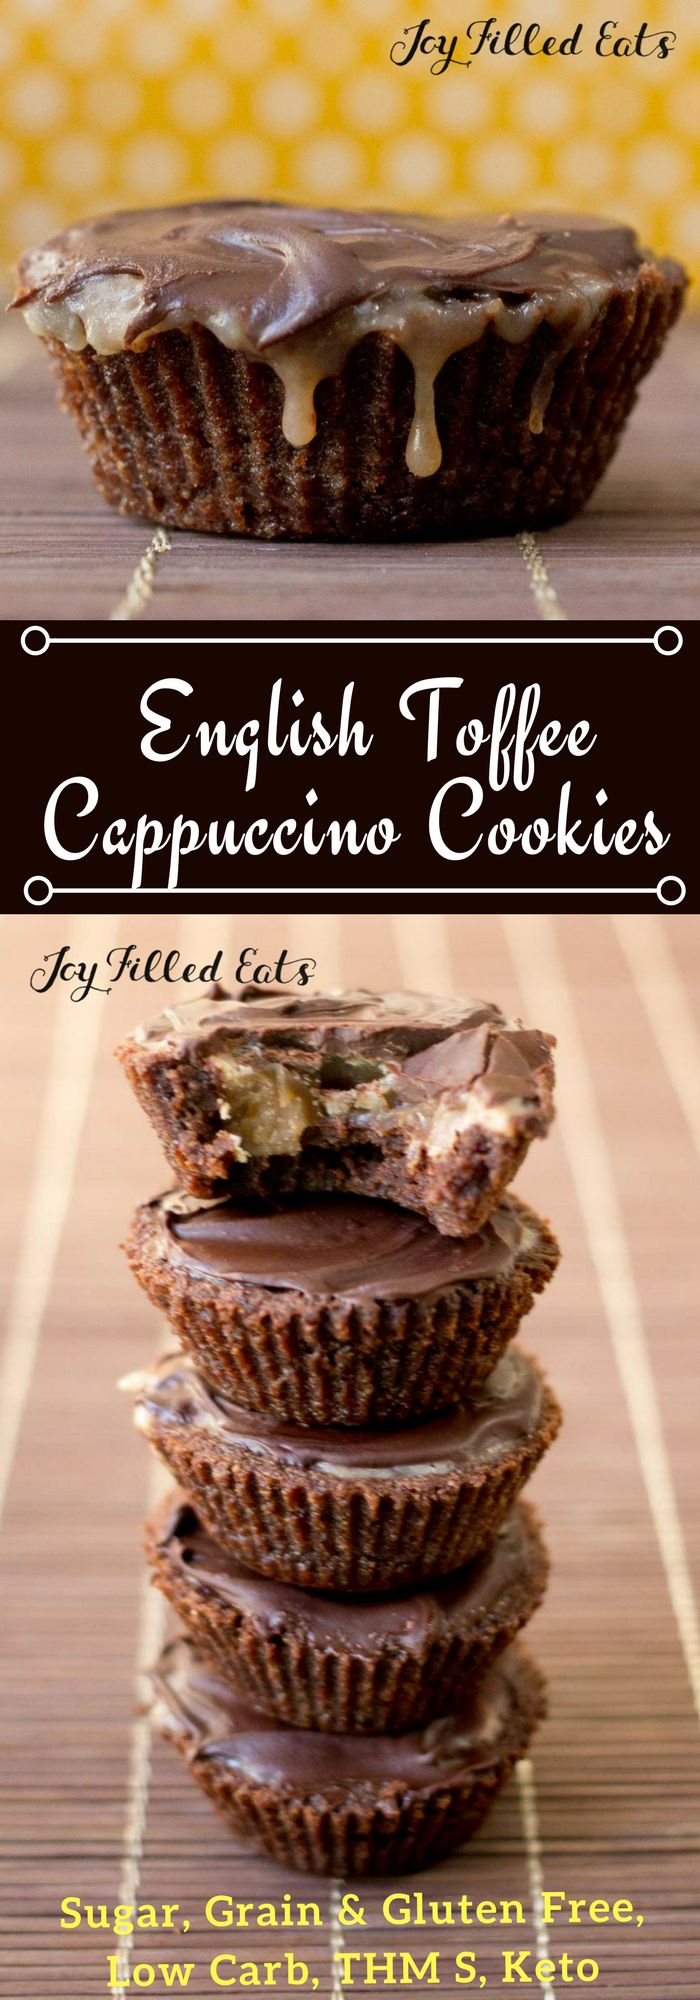 English Toffee Cappuccino Cookies - Low Carb, Grain Gluten Sugar Free, THM S, Keto - With a mocha cookie cup filled with caramel toffee and topped with chocolate, these English Toffee Cappuccino Cookies need a place on your cookie tray.